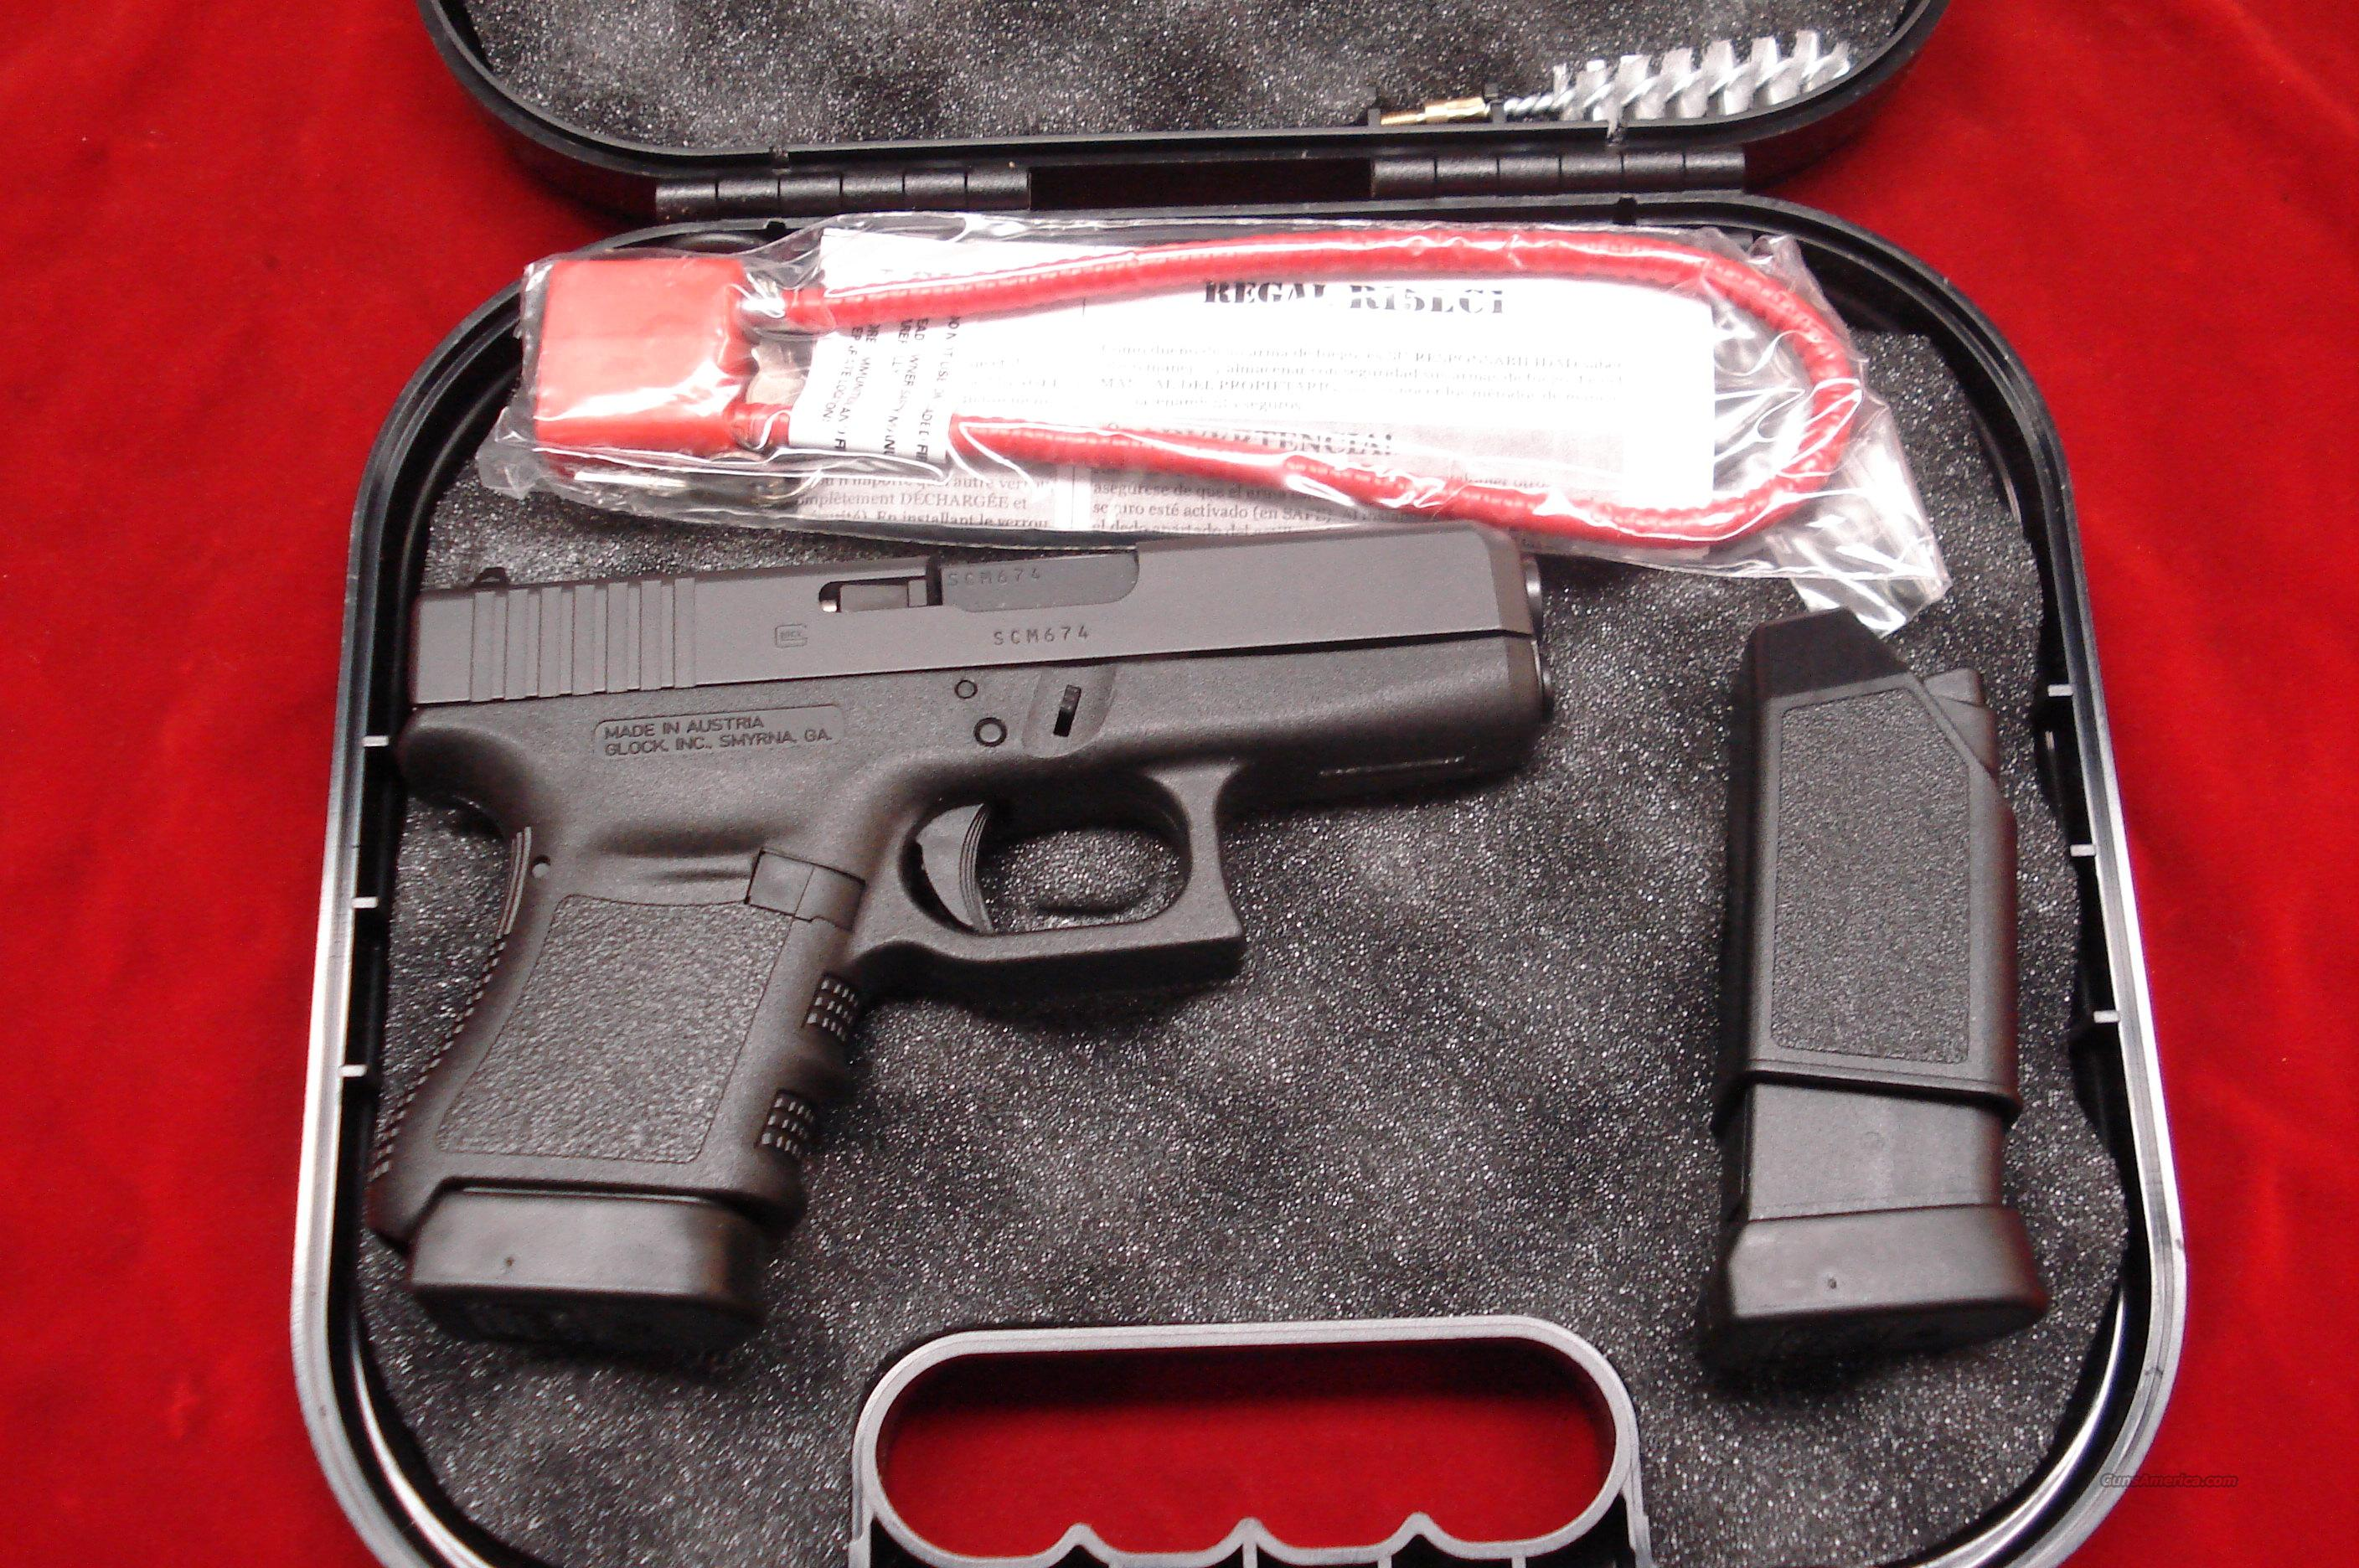 GLOCK MODEL 36 45ACP NEW   Guns > Pistols > Glock Pistols > 29/30/36